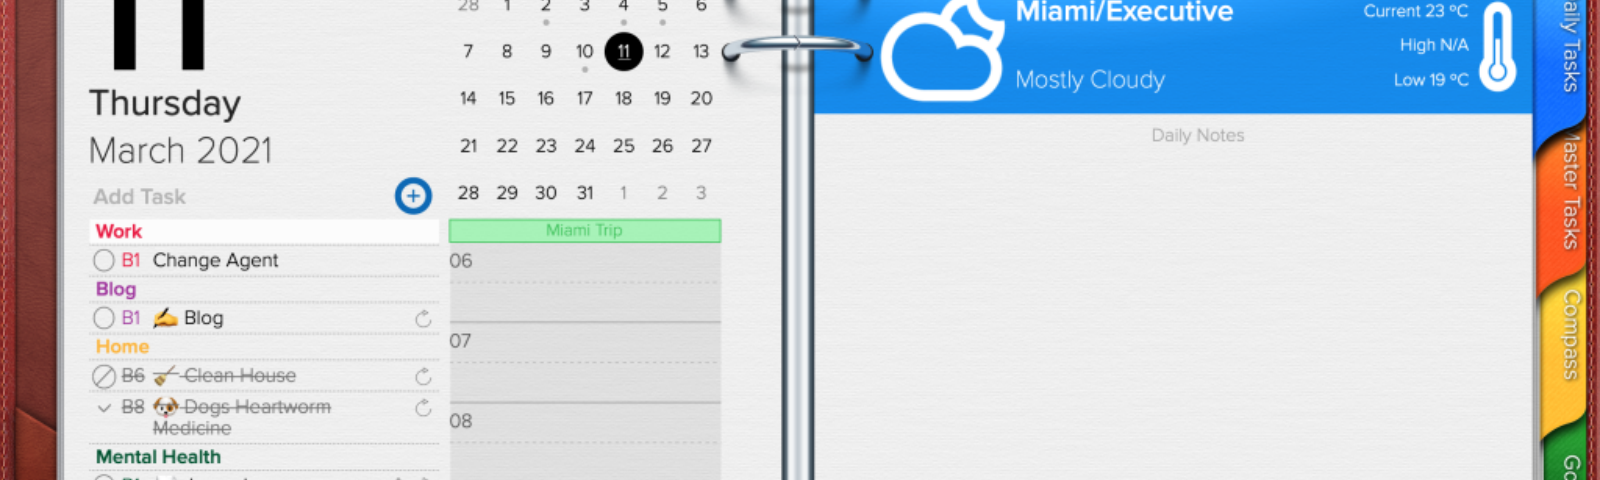 Opus One Daily Planner, task manager, and Note section.